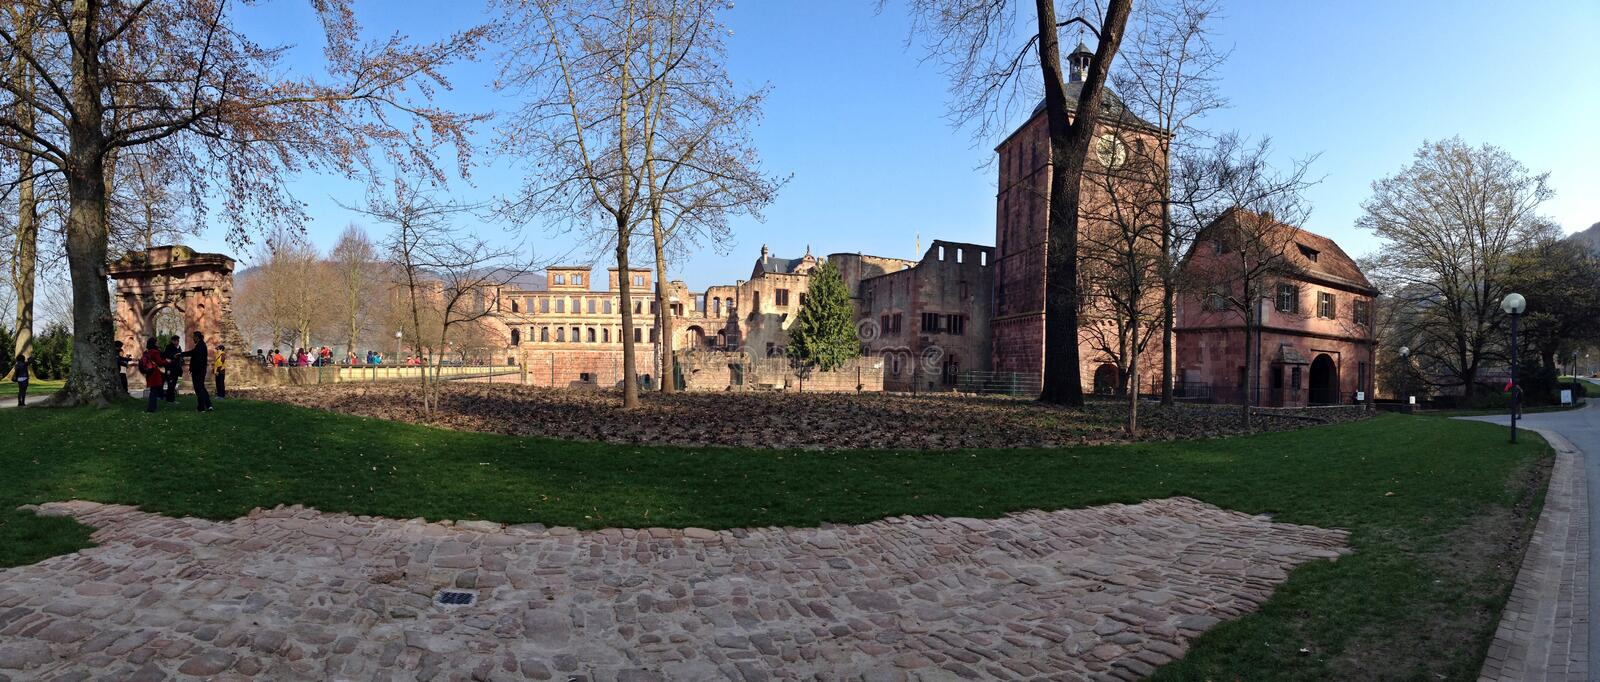 Front side of Heidelberg castle royalty free stock images